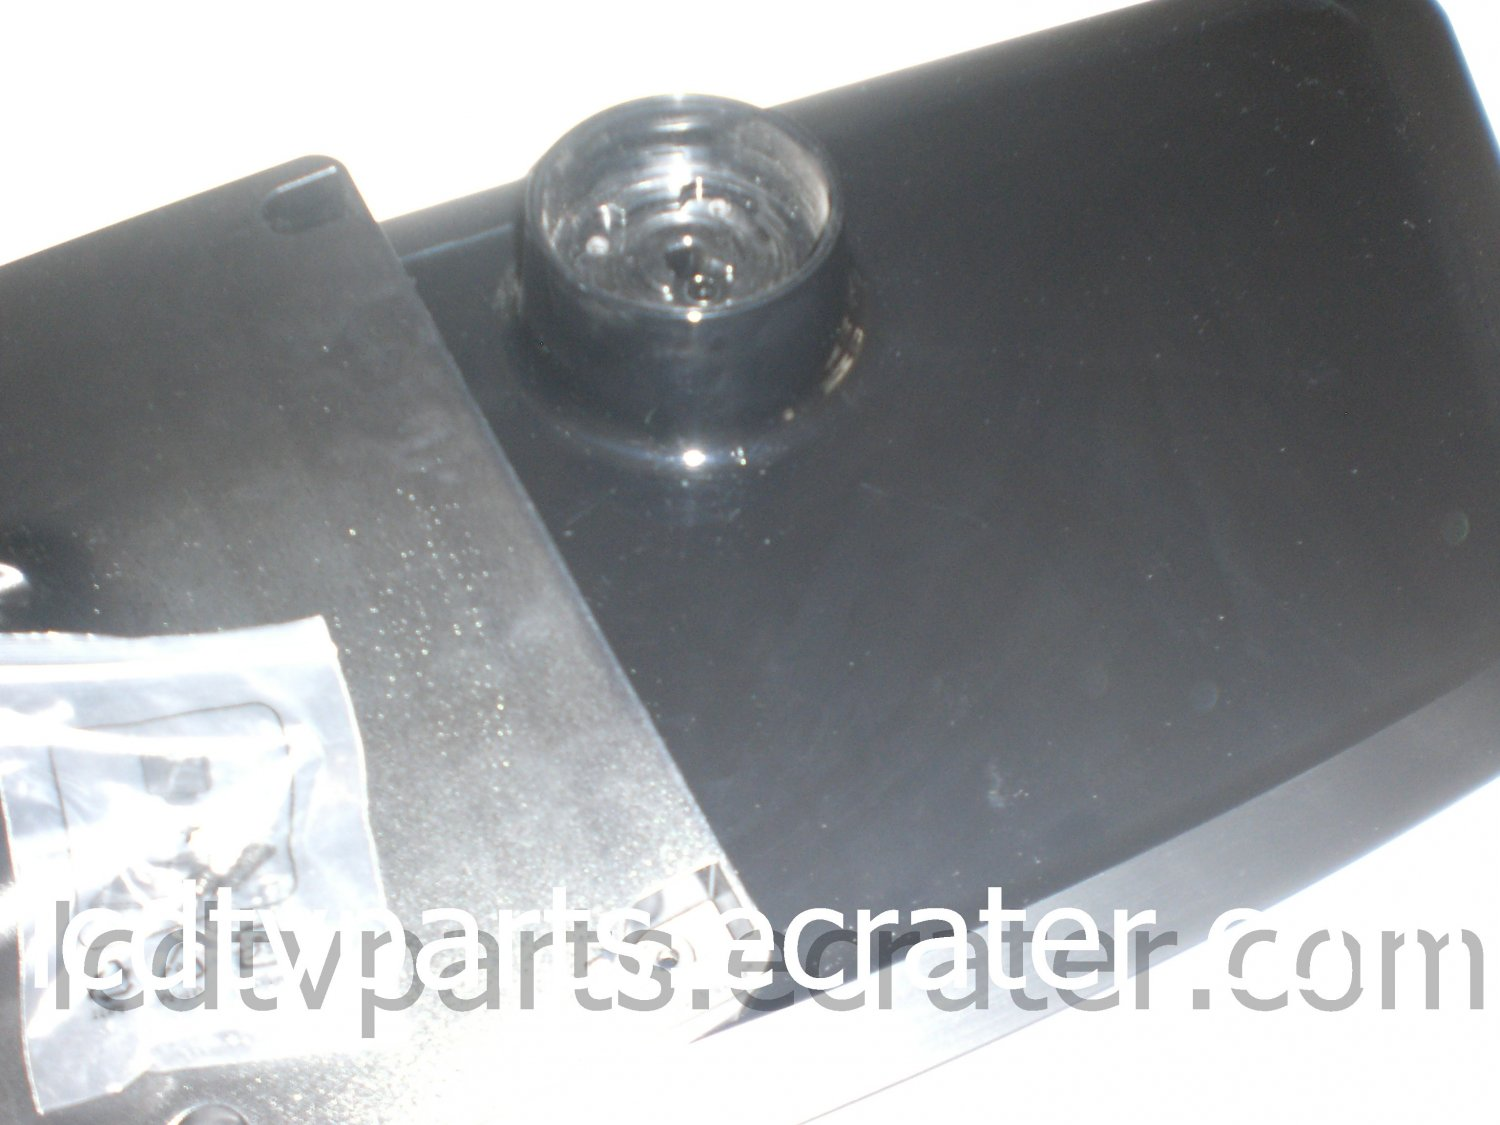 ABA74488603, AAN74211110, LCD TV Pedestal base Stand for LG 47LN5700